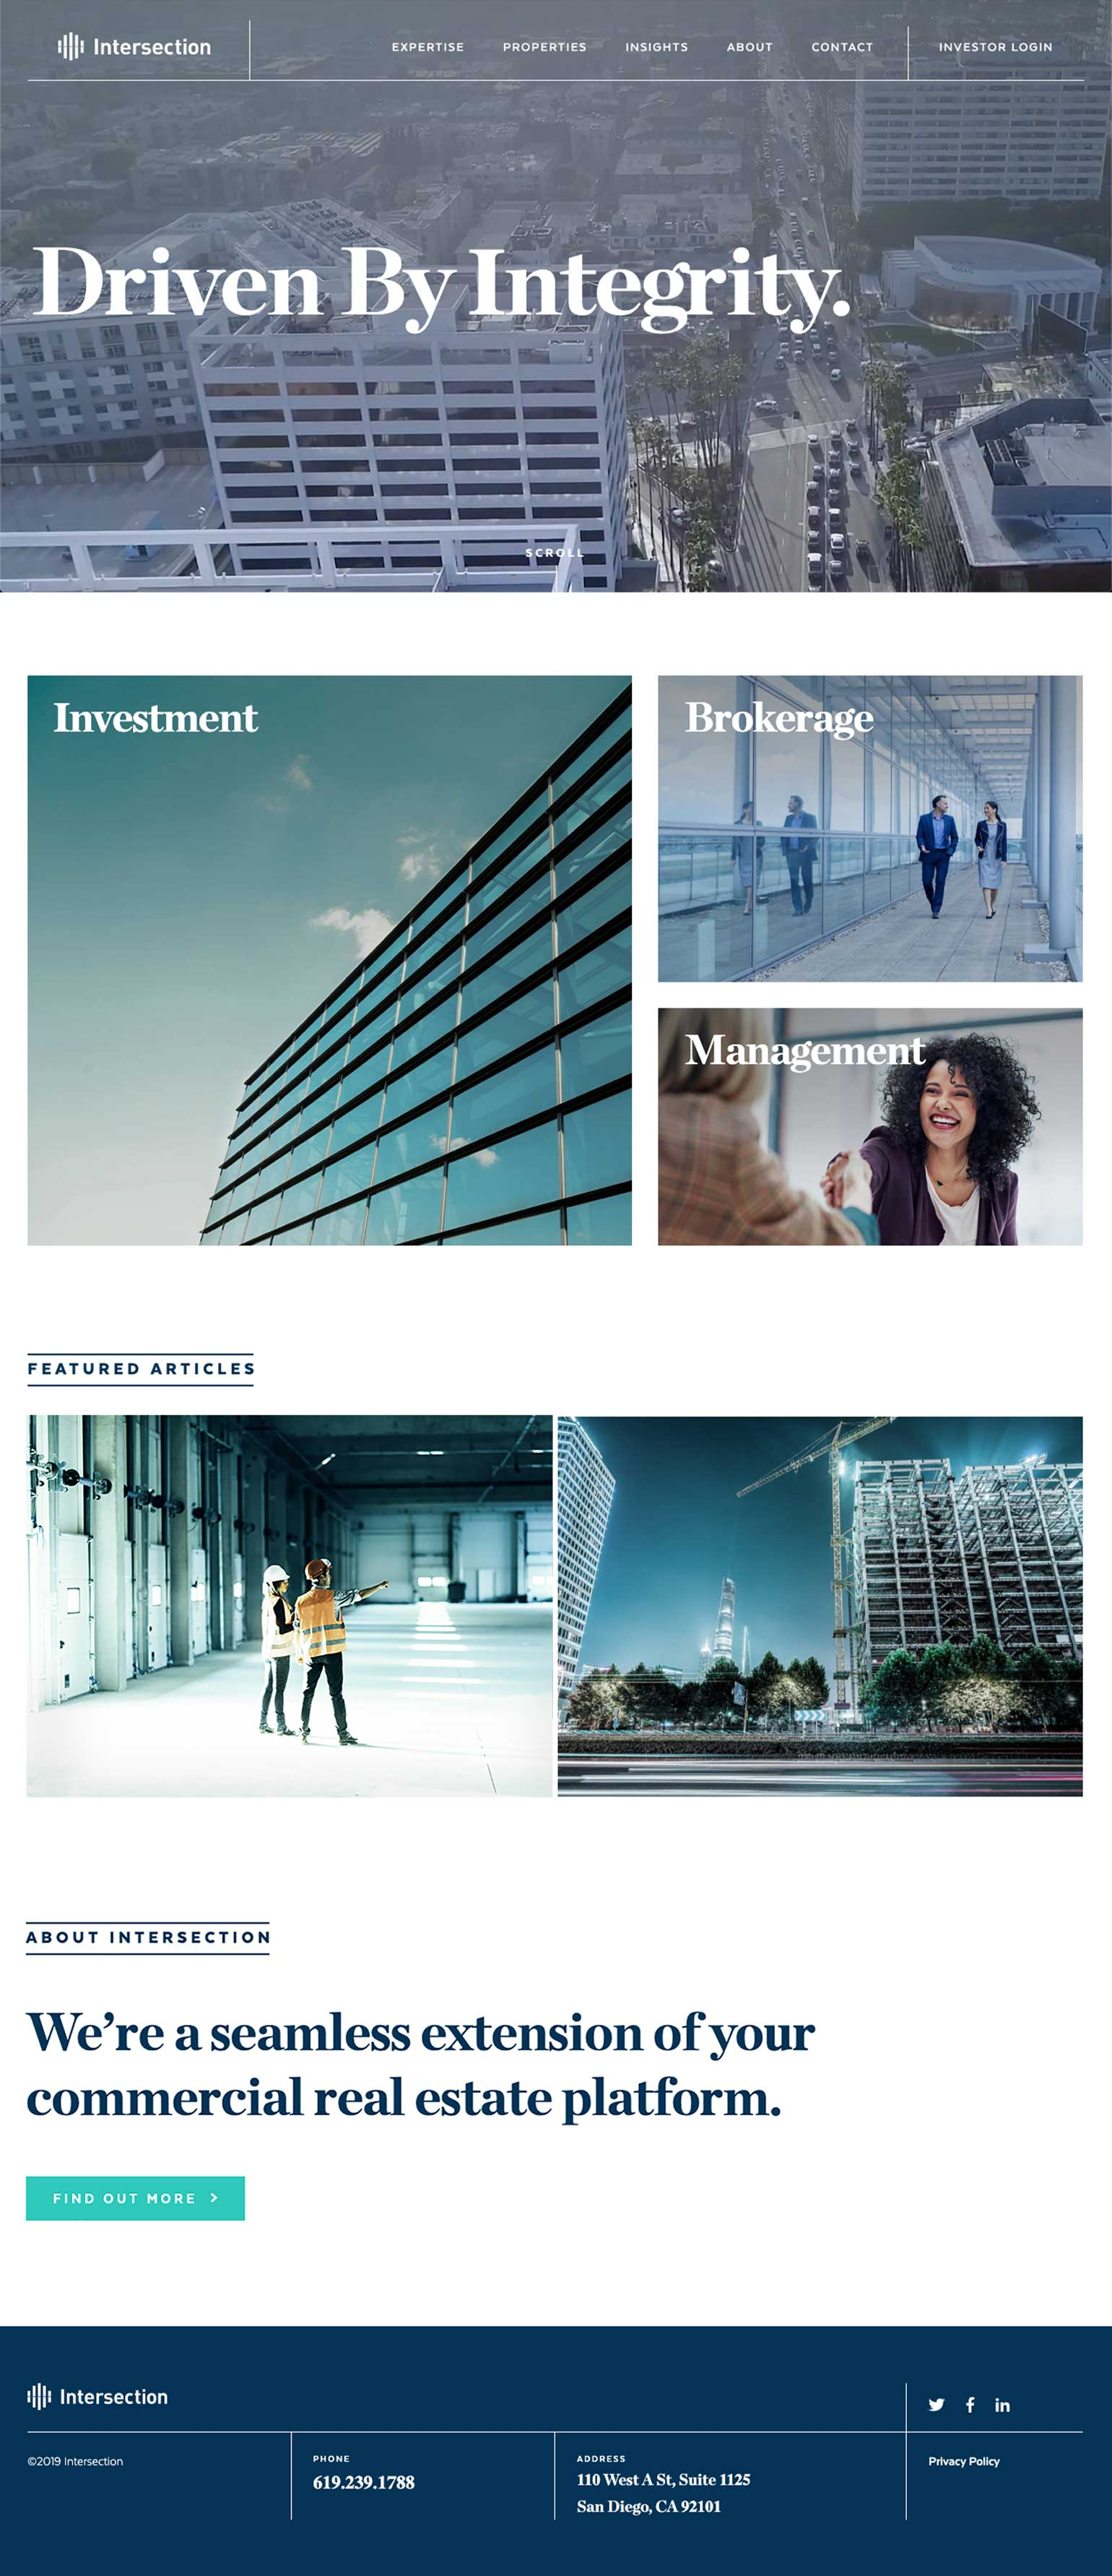 ignyte-branding-agency-intersection-web-design-home-page-V6